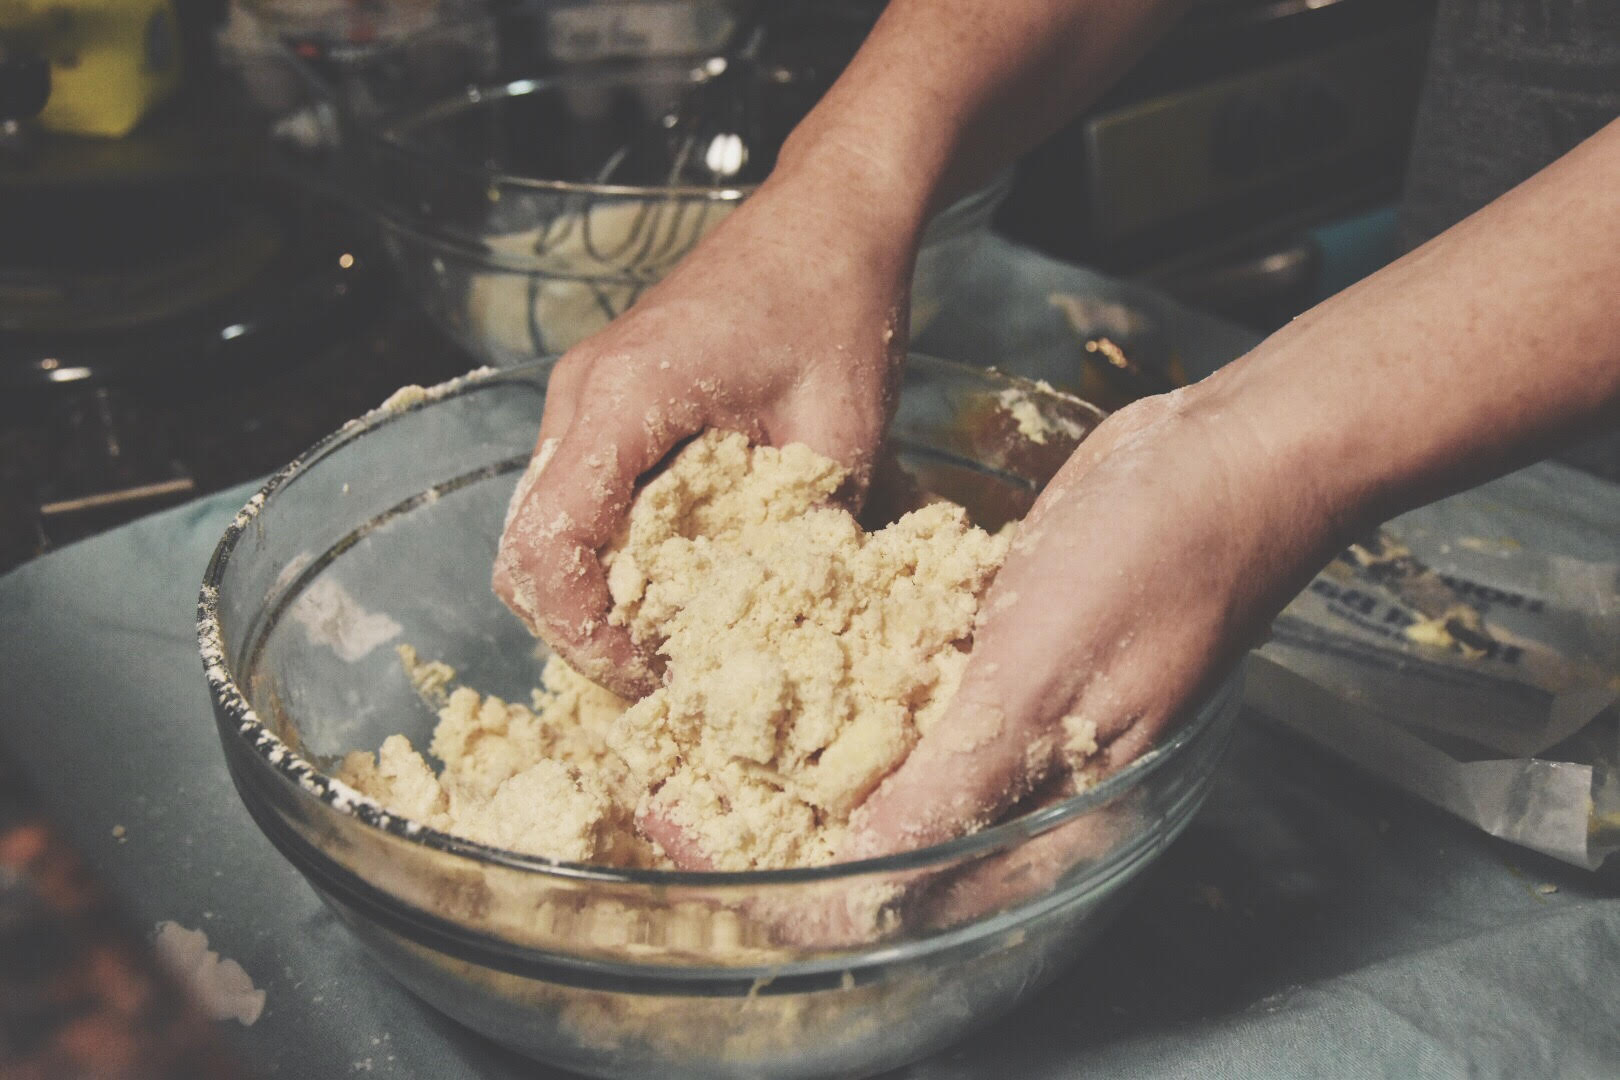 Mixing the Scone Dough